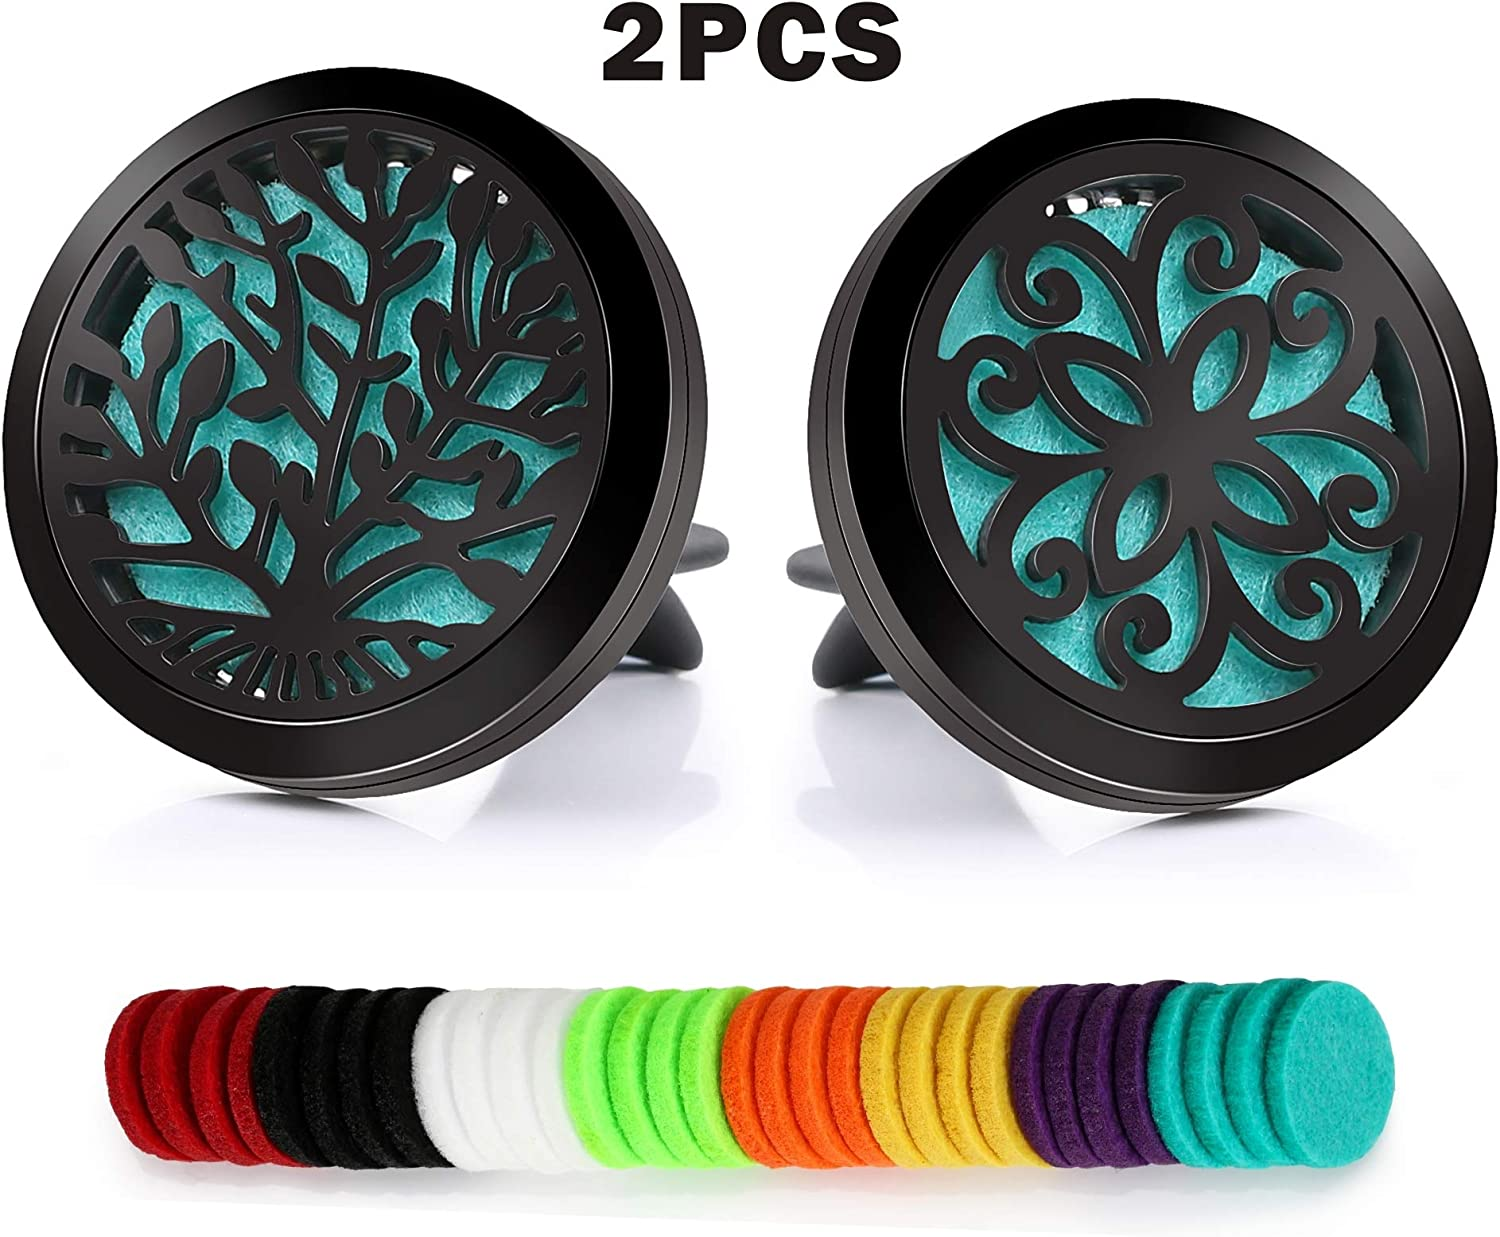 2PCS 30mm Car Essential Oils Diffuser Stainless Steel Car Aromatherapy Diffuser Vent Clip+32pcs Refill Pads (Tree of Life&Flower)